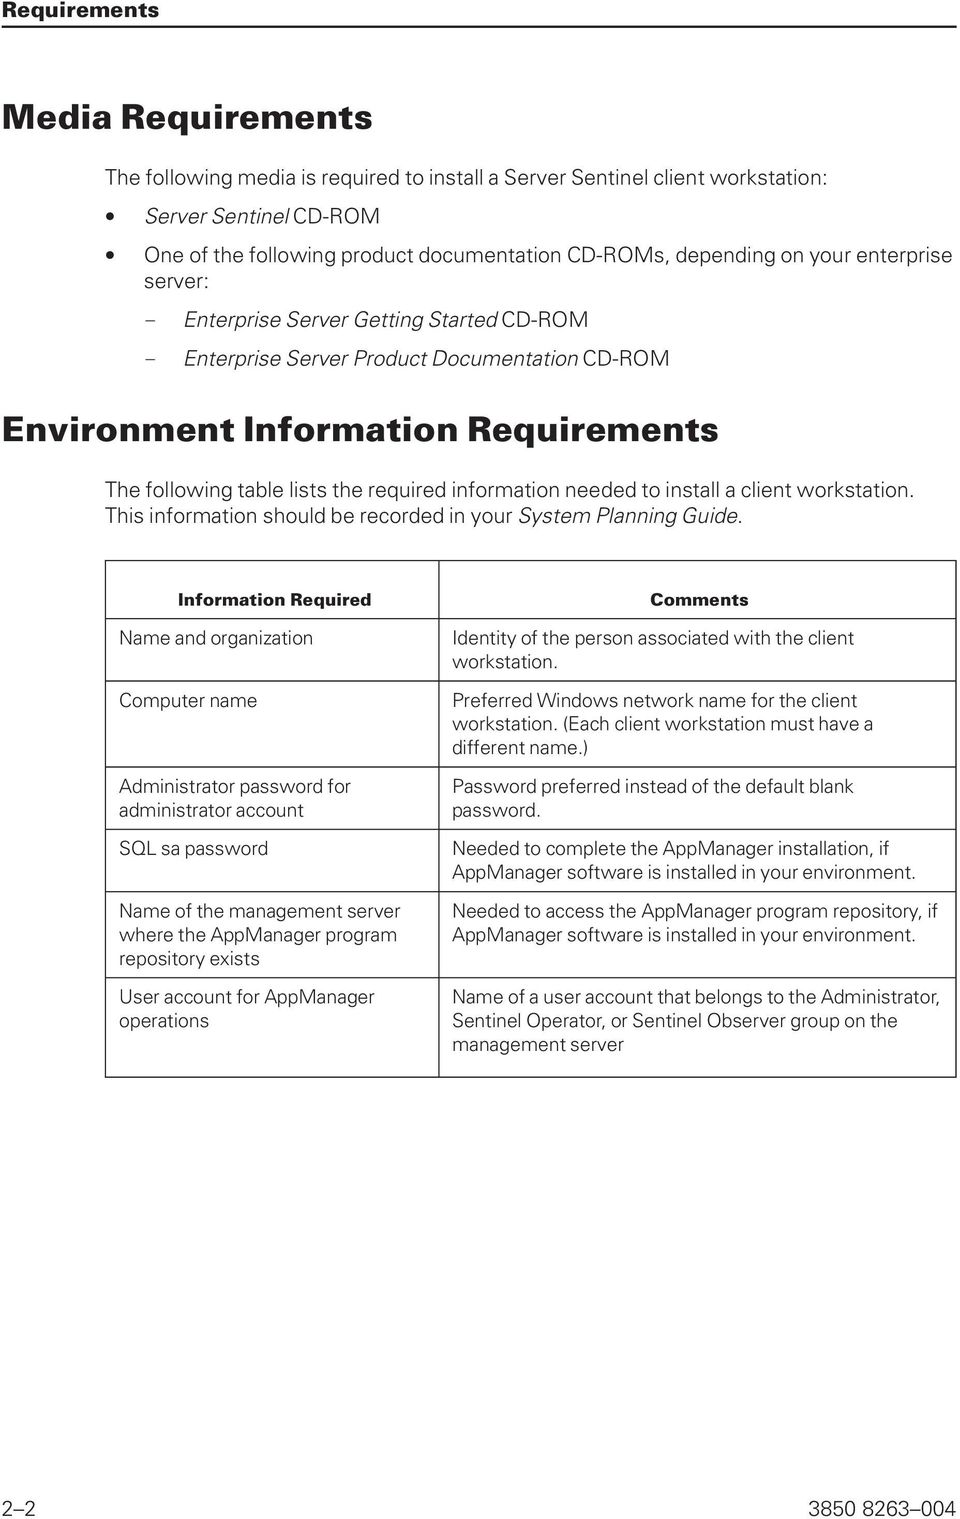 information needed to install a client workstation. This information should be recorded in your System Planning Guide.